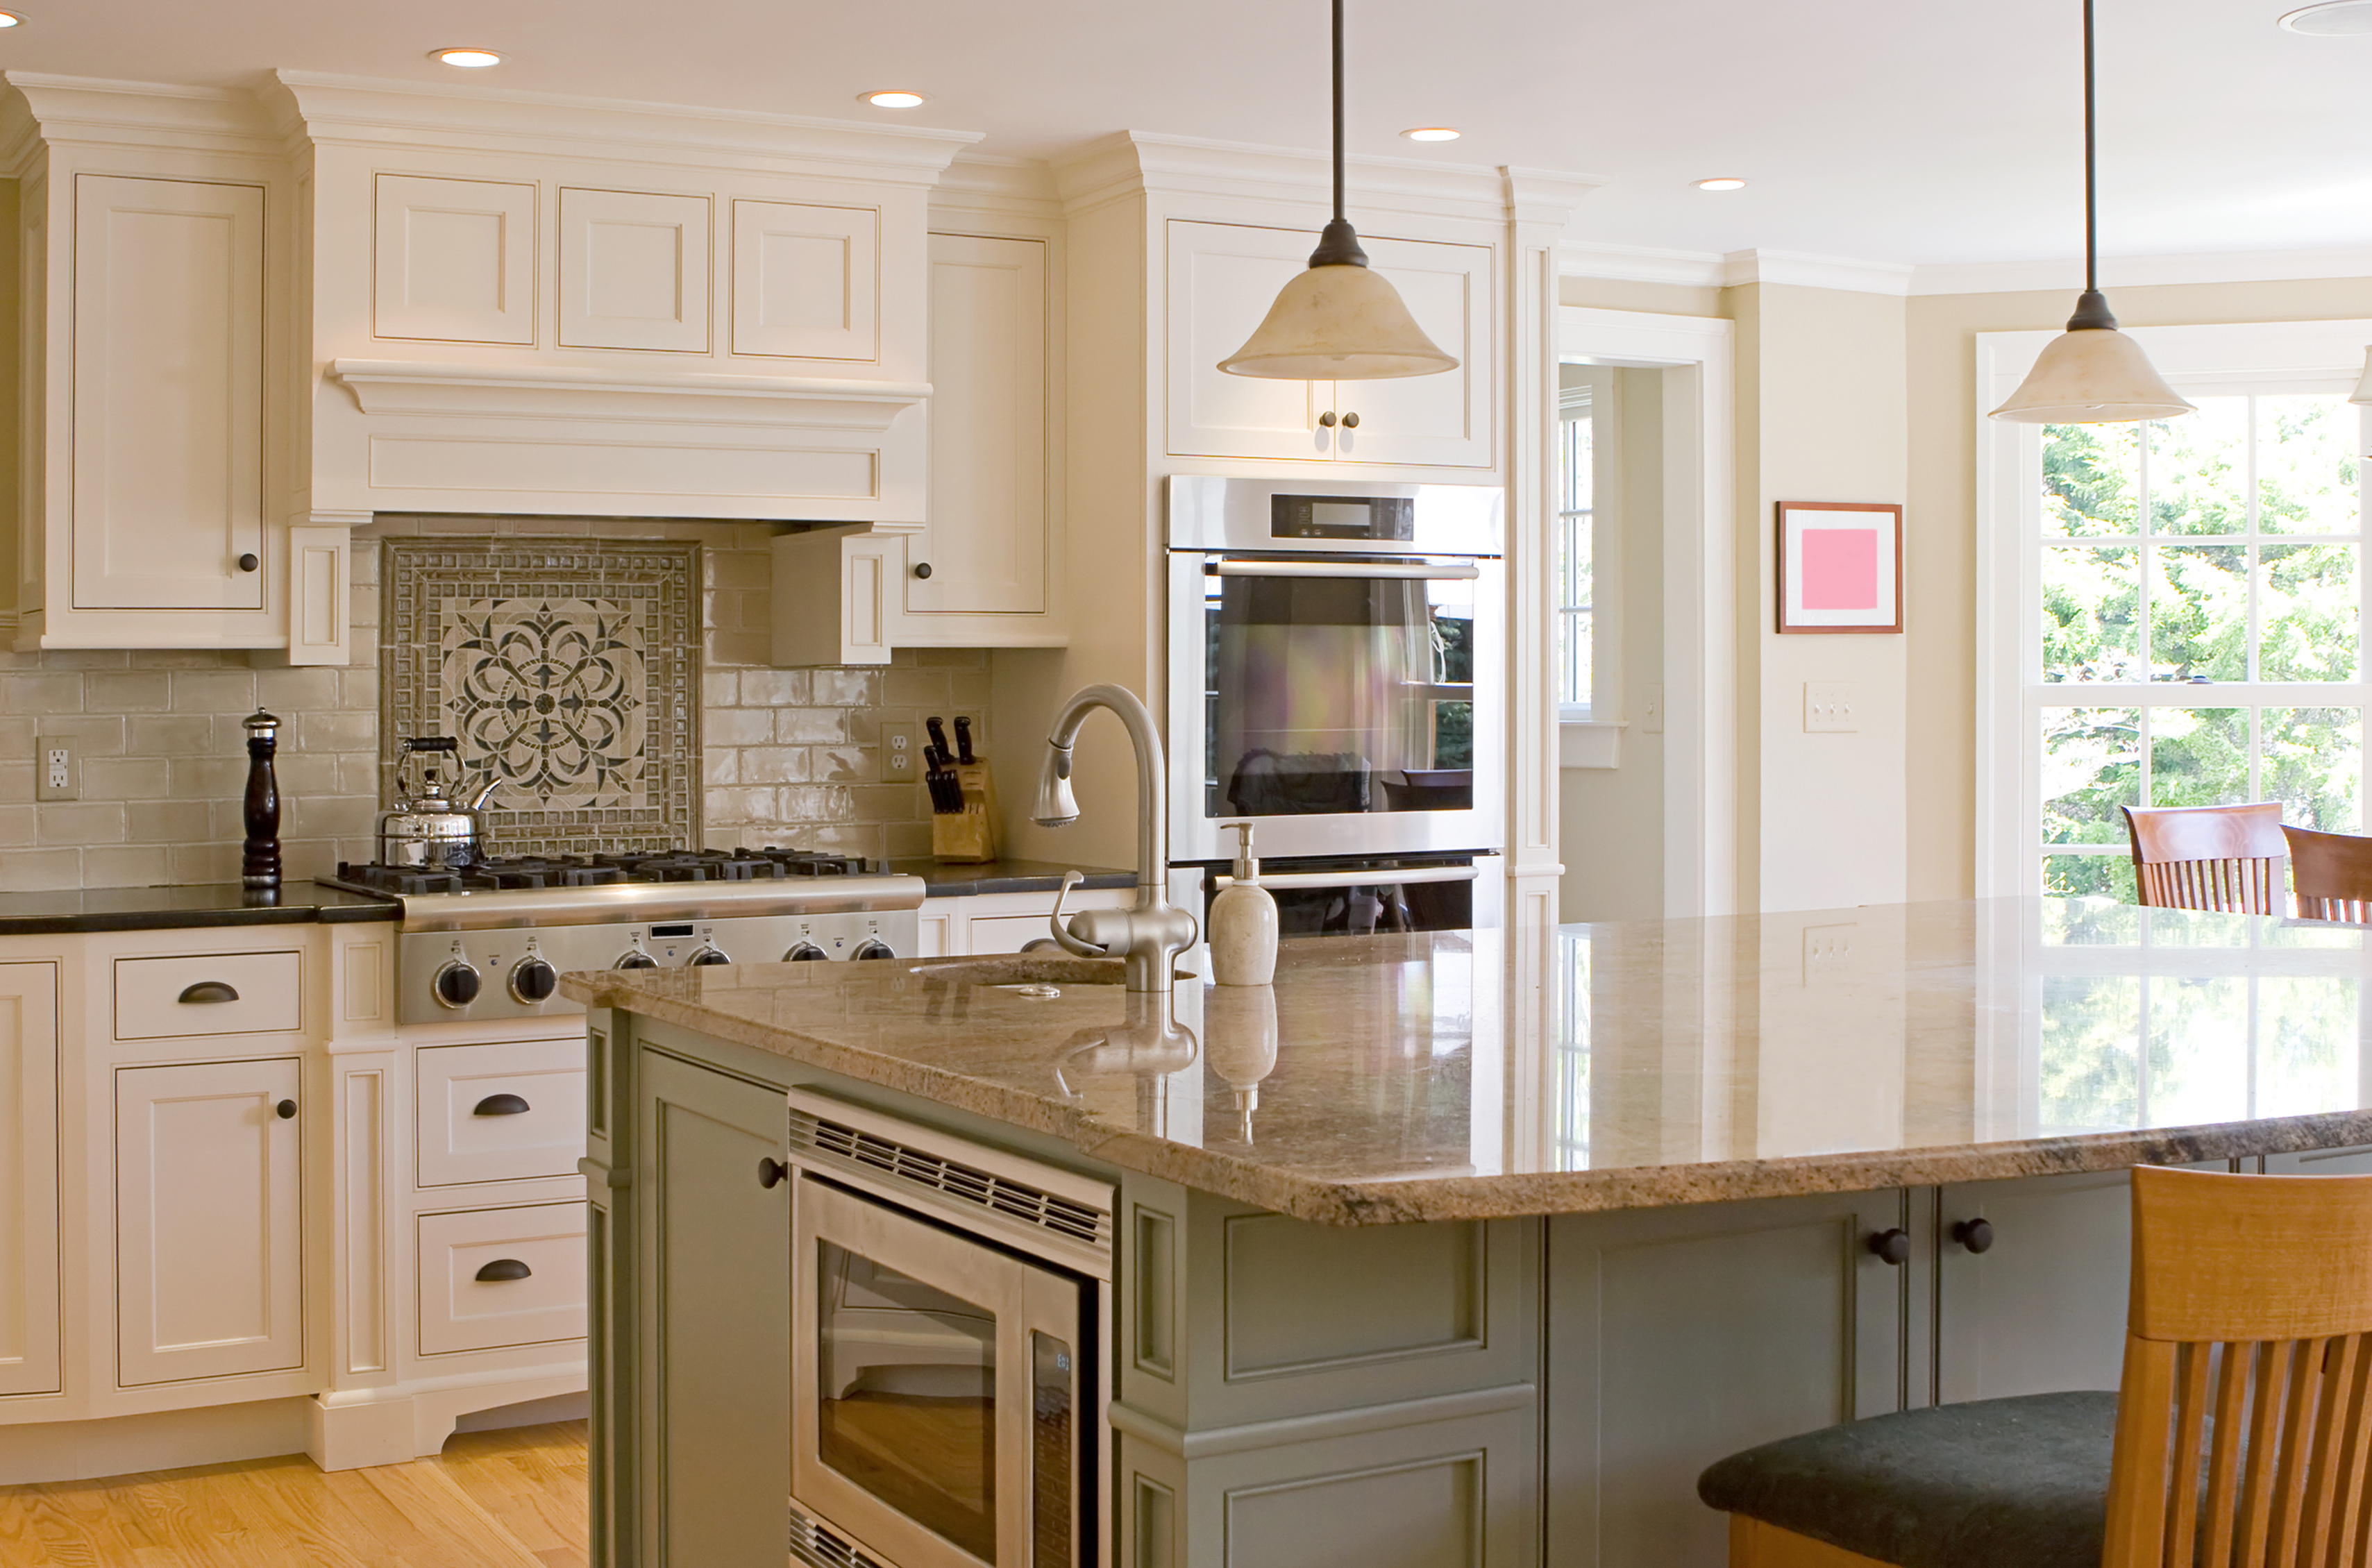 the standard overhang of a kitchen countertop home